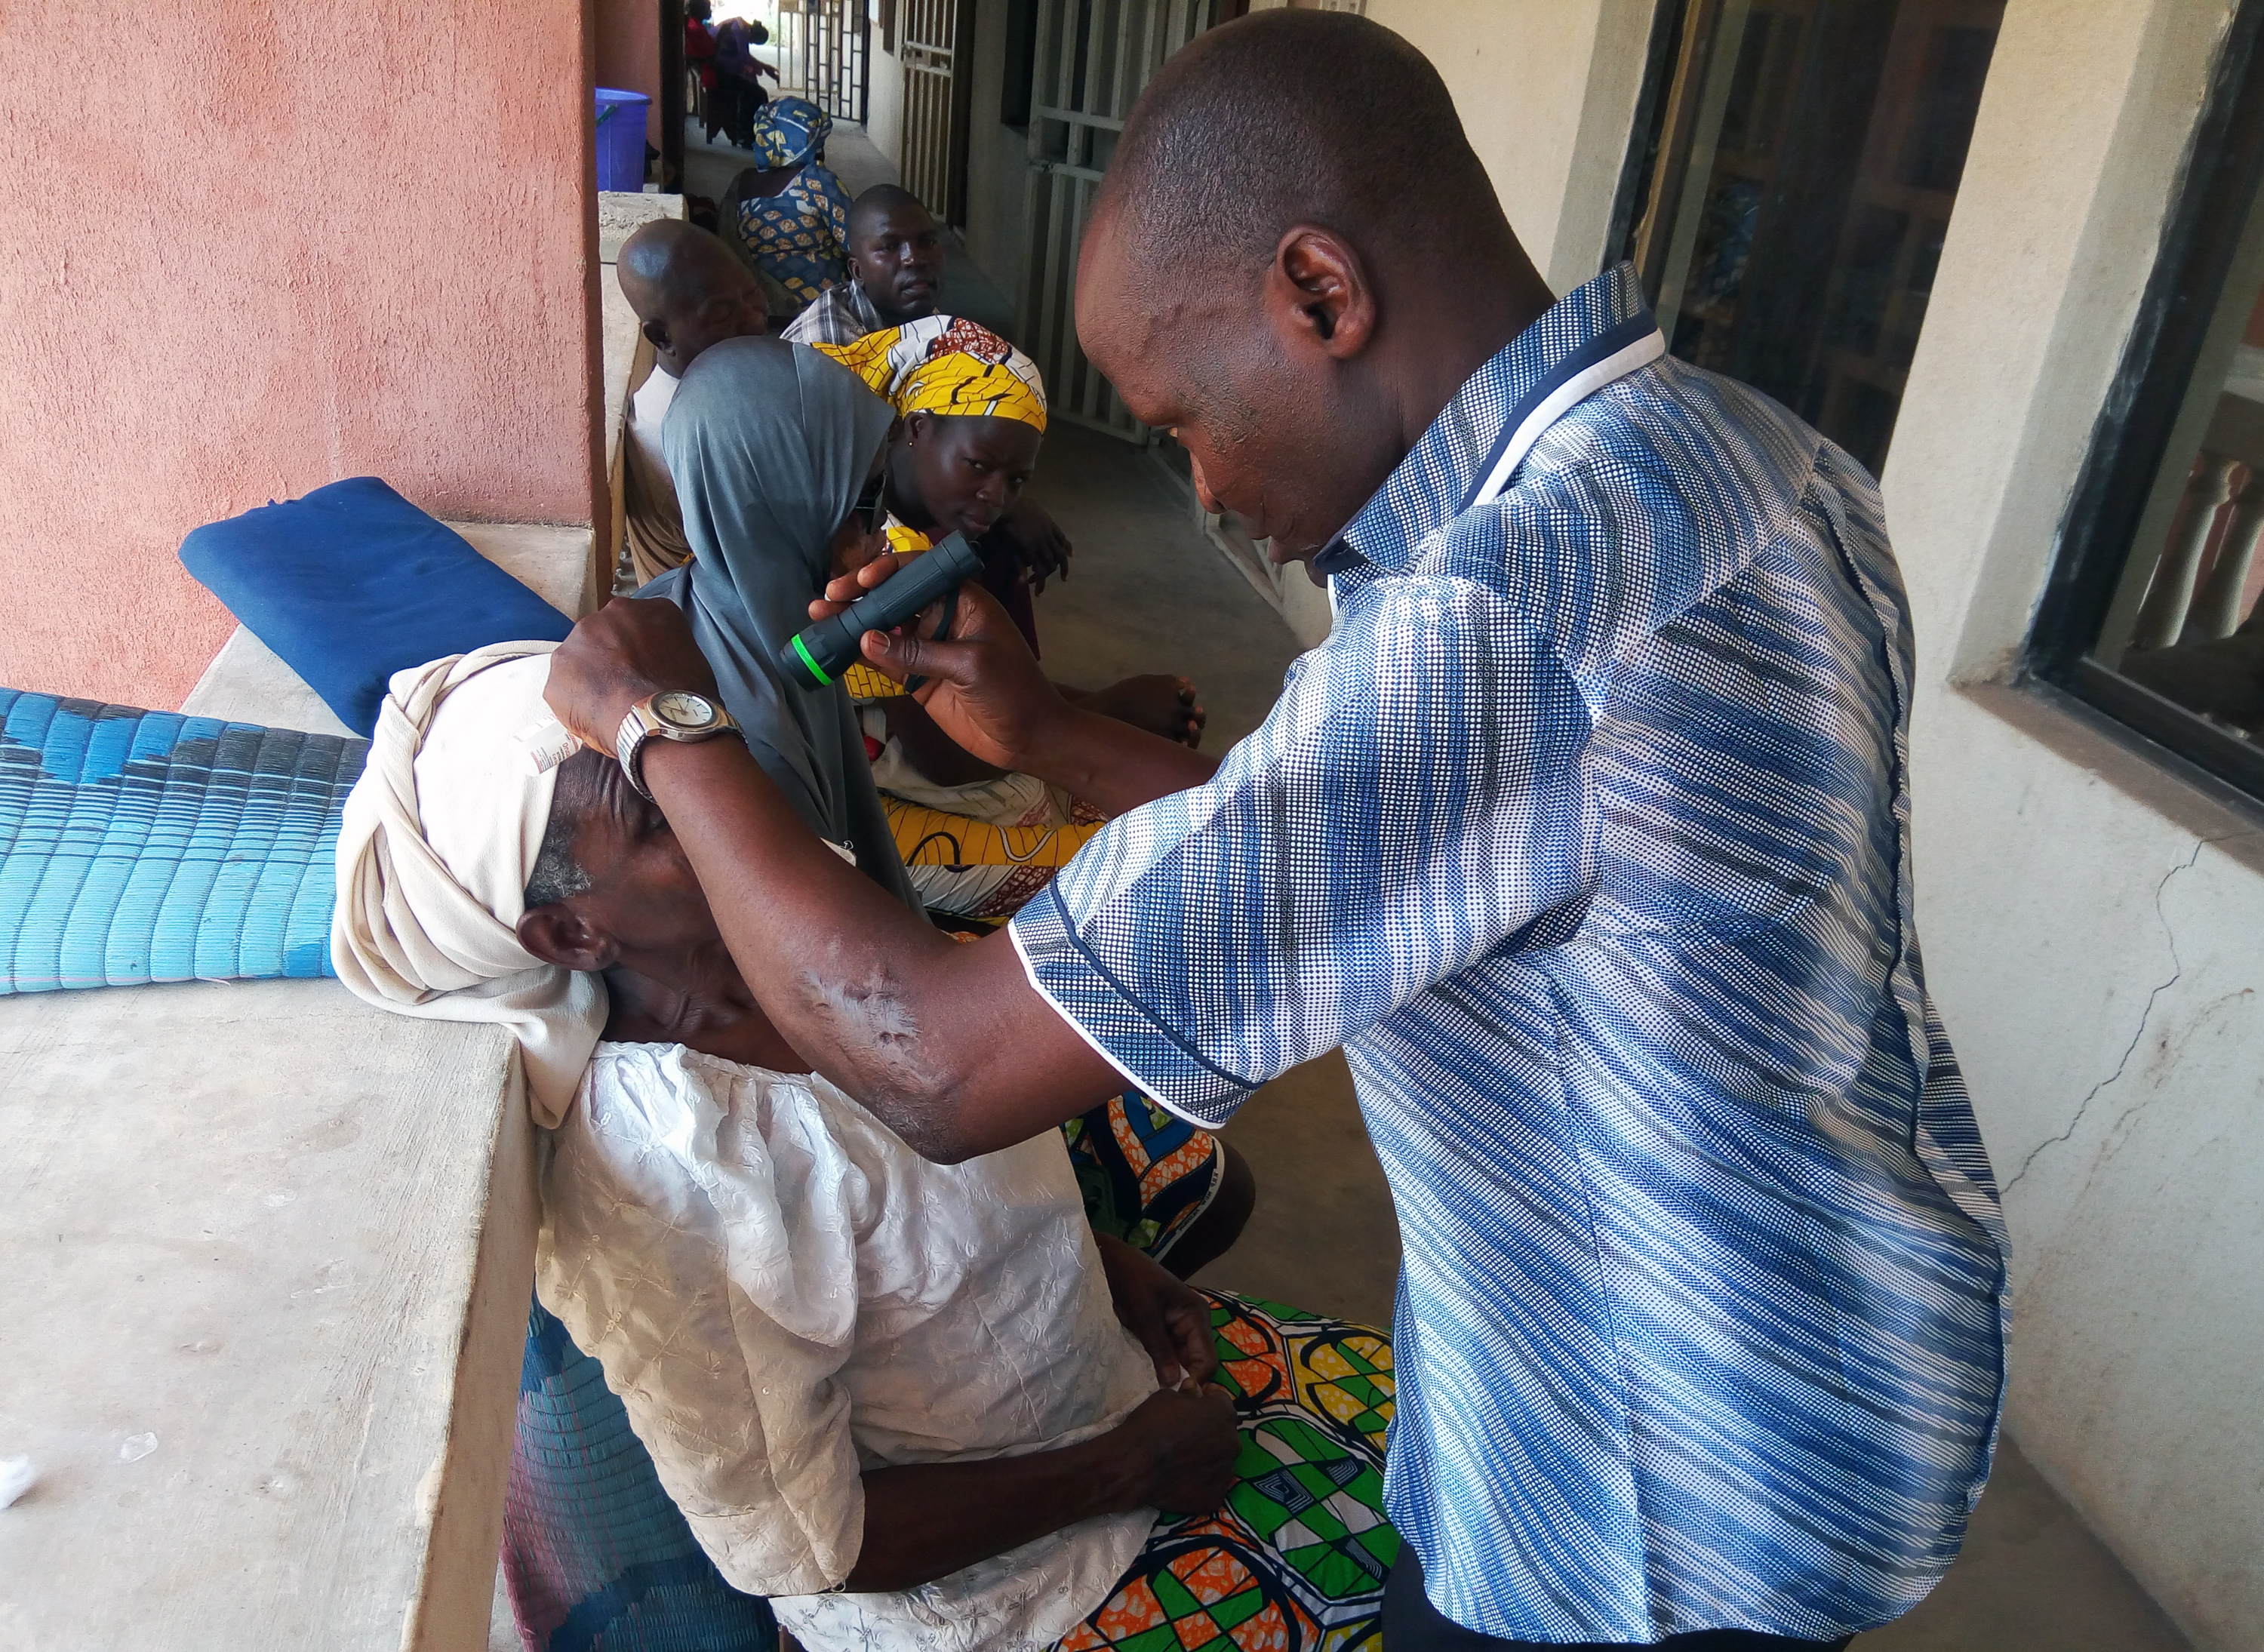 A woman has her eyes examined by a medical attendant while other patients sit waiting in line at Gwandum Clinic in Nigeria. Photo by the Rev. Ande I. Emmanuel, UMNS.